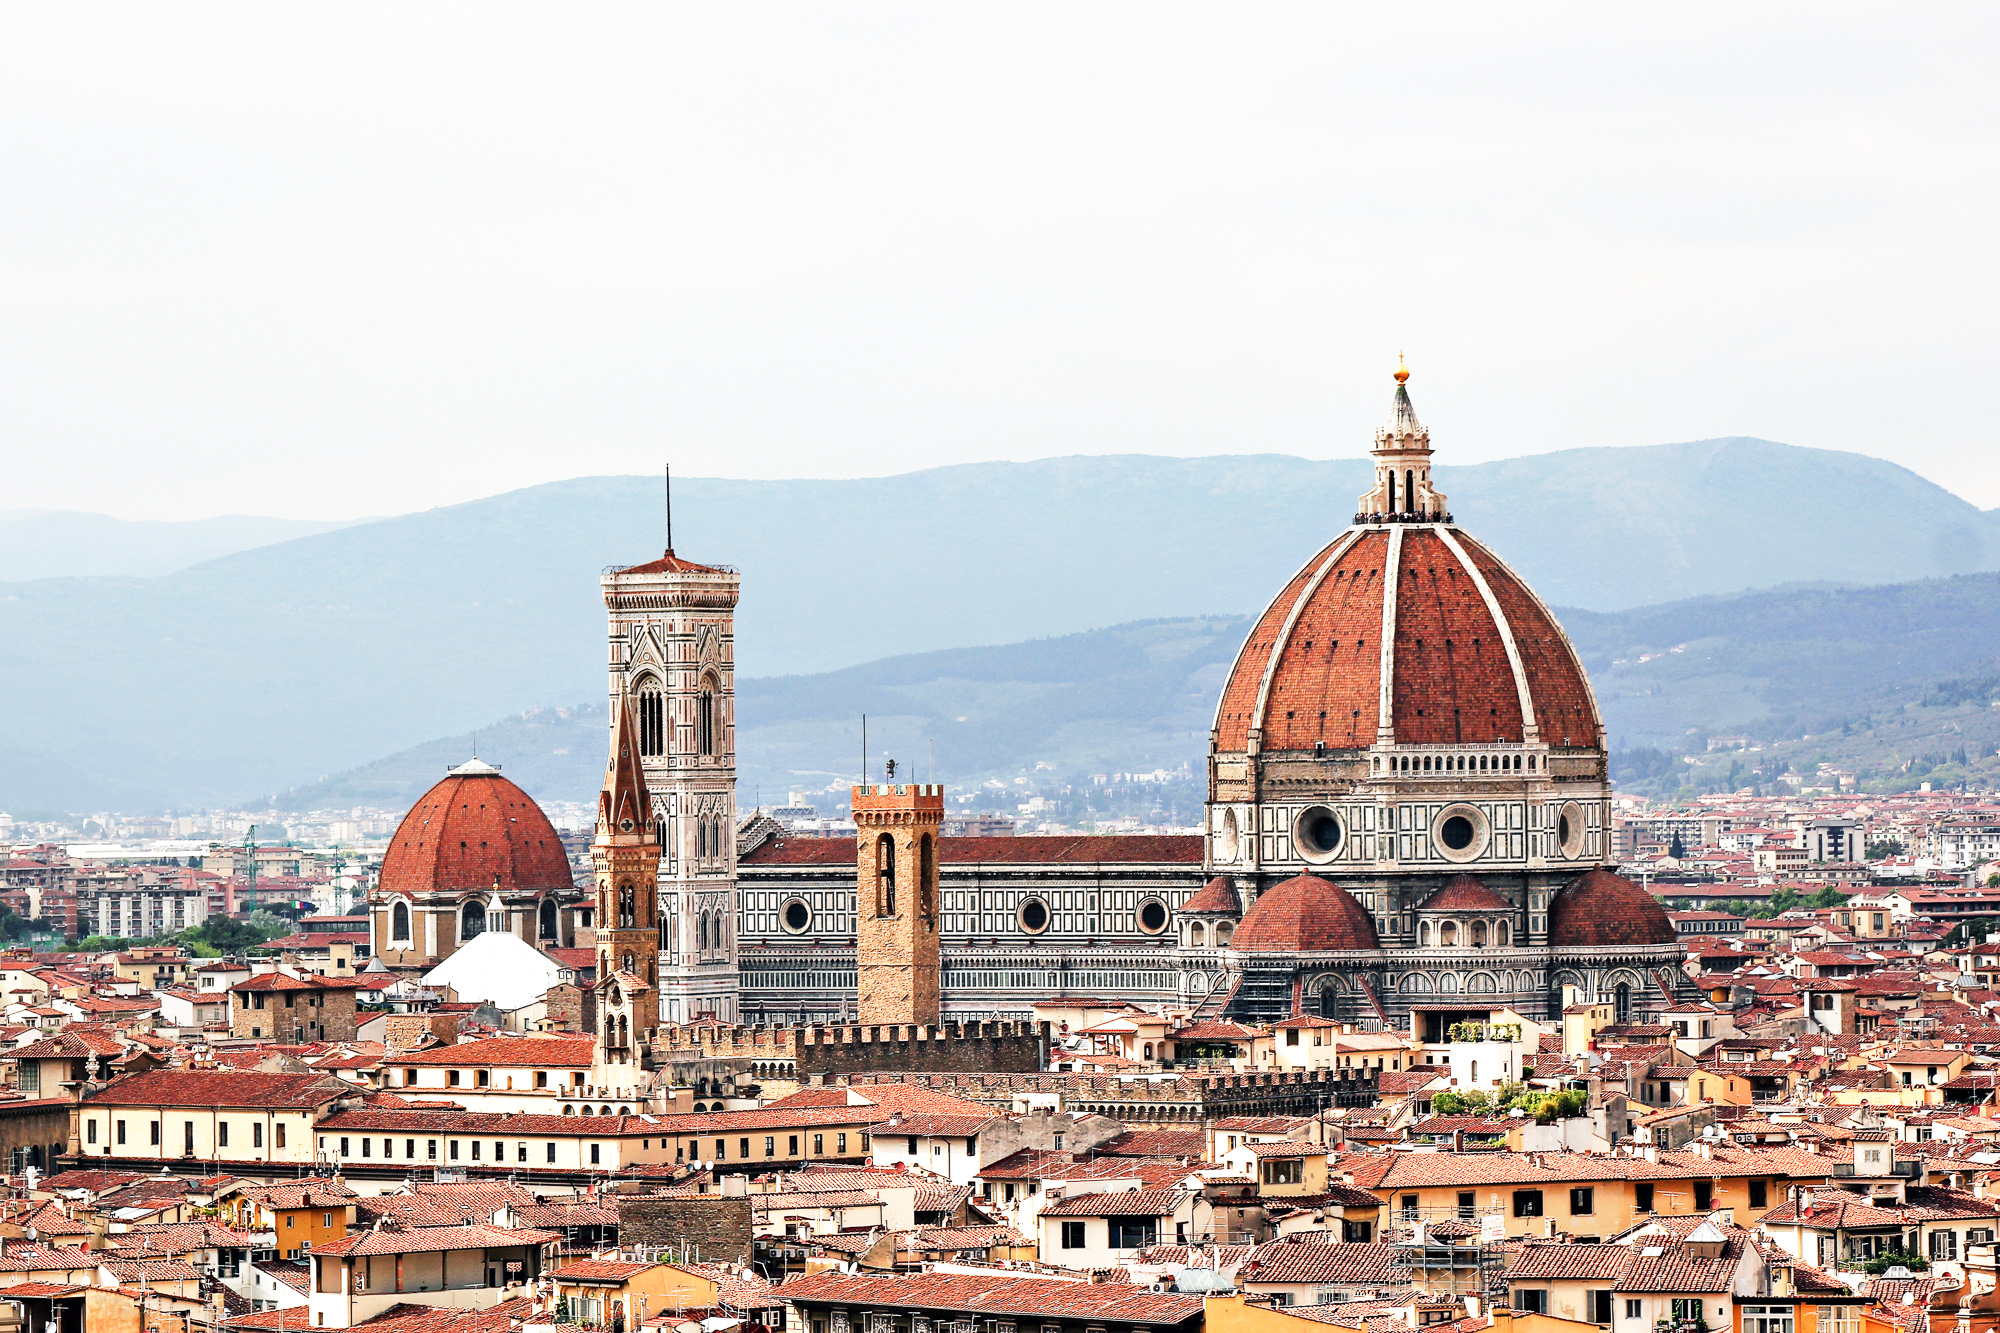 ca79f6fc2 It's hard to miss, too—it's one of the most massive and breathtaking  architectural phenomenons in all of Florence.